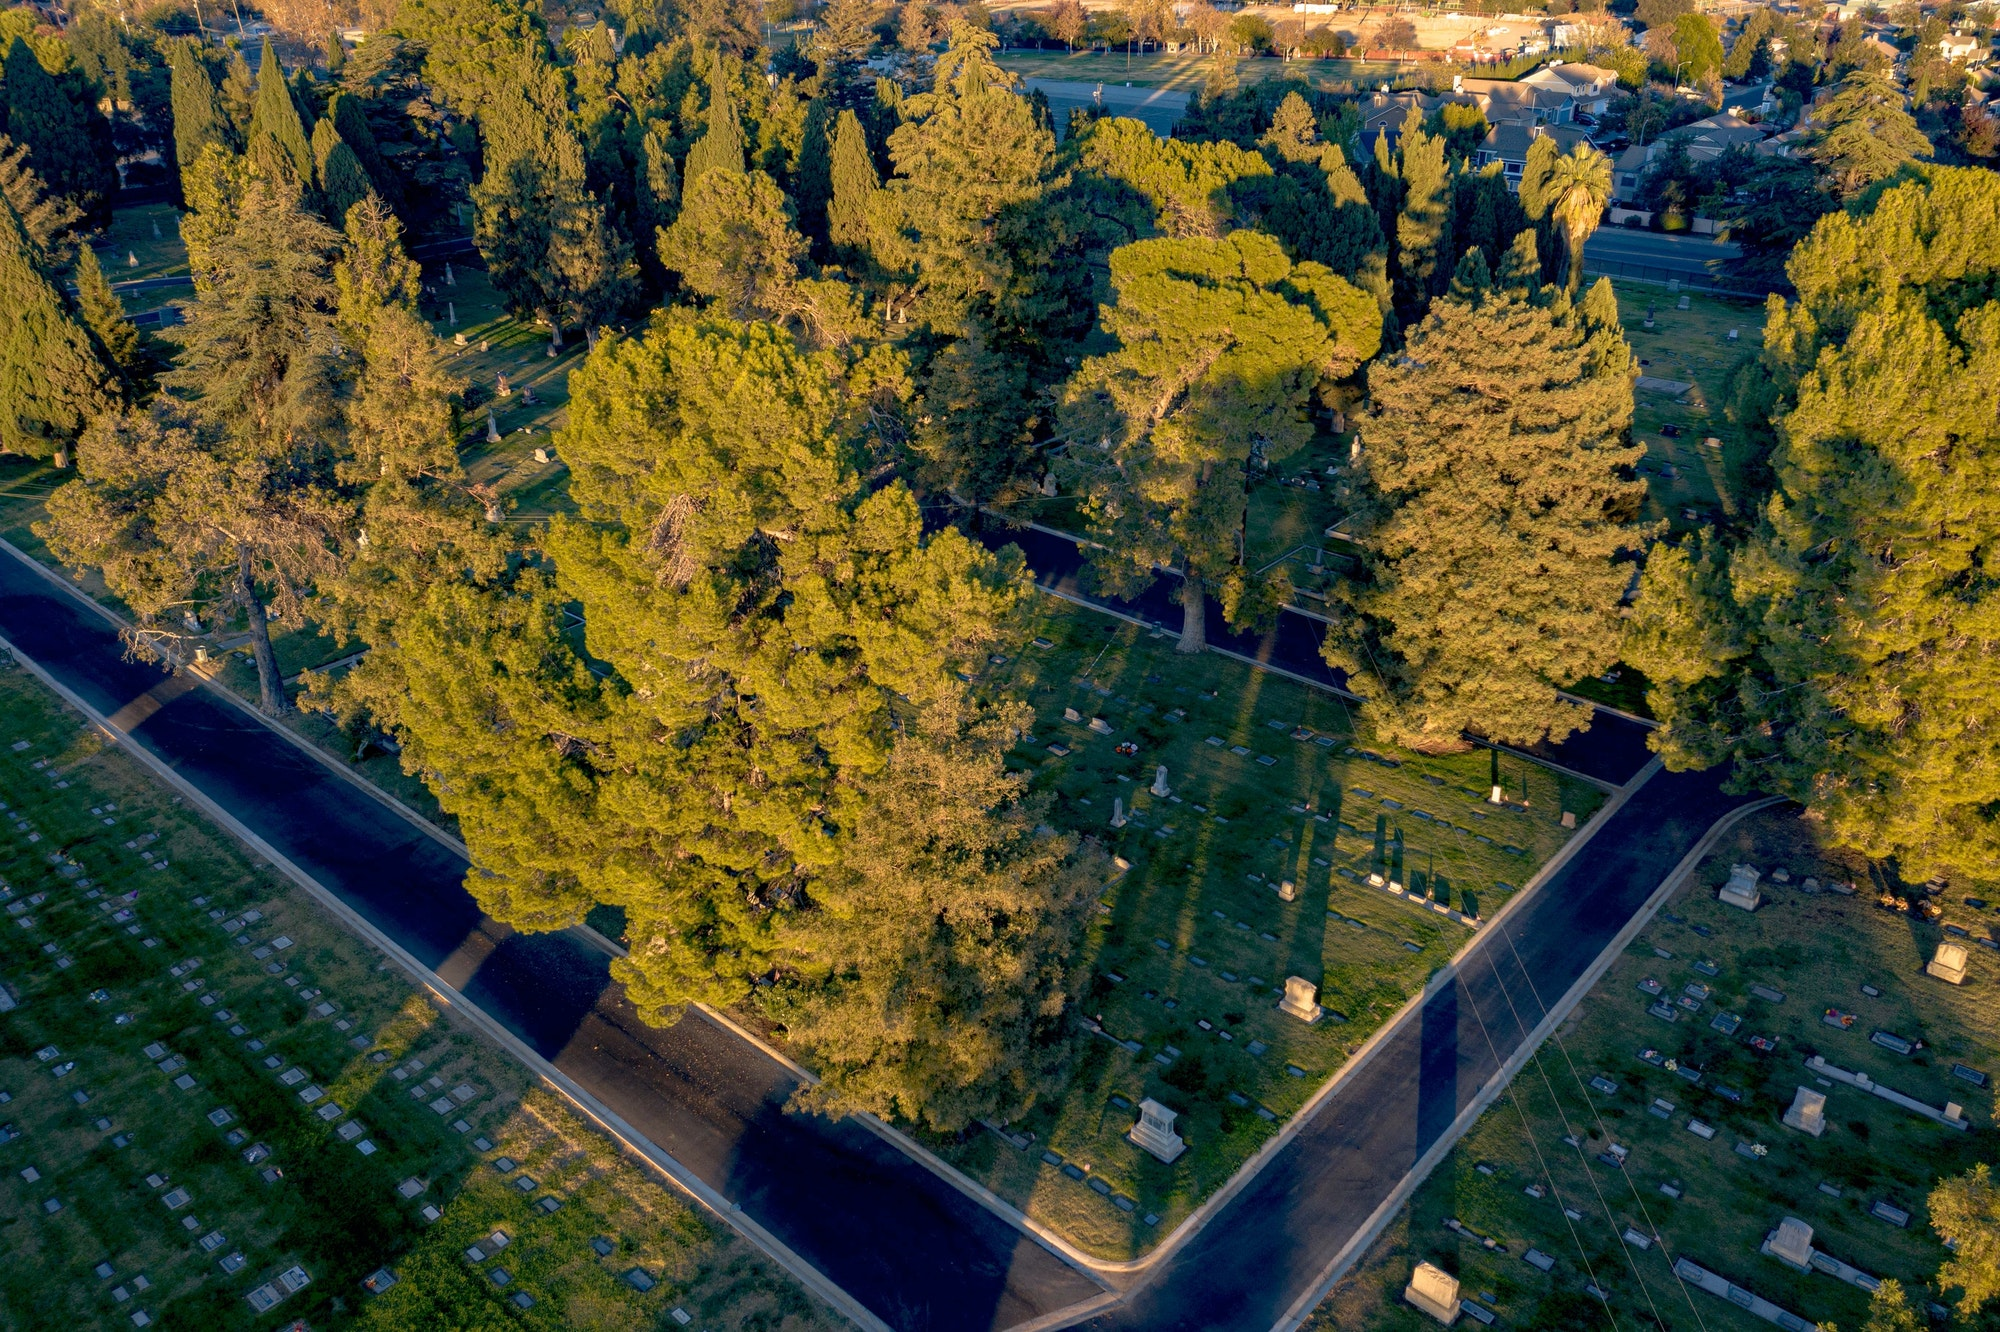 May contain: nature, outdoors, scenery, landscape, aerial view, plant, and tree